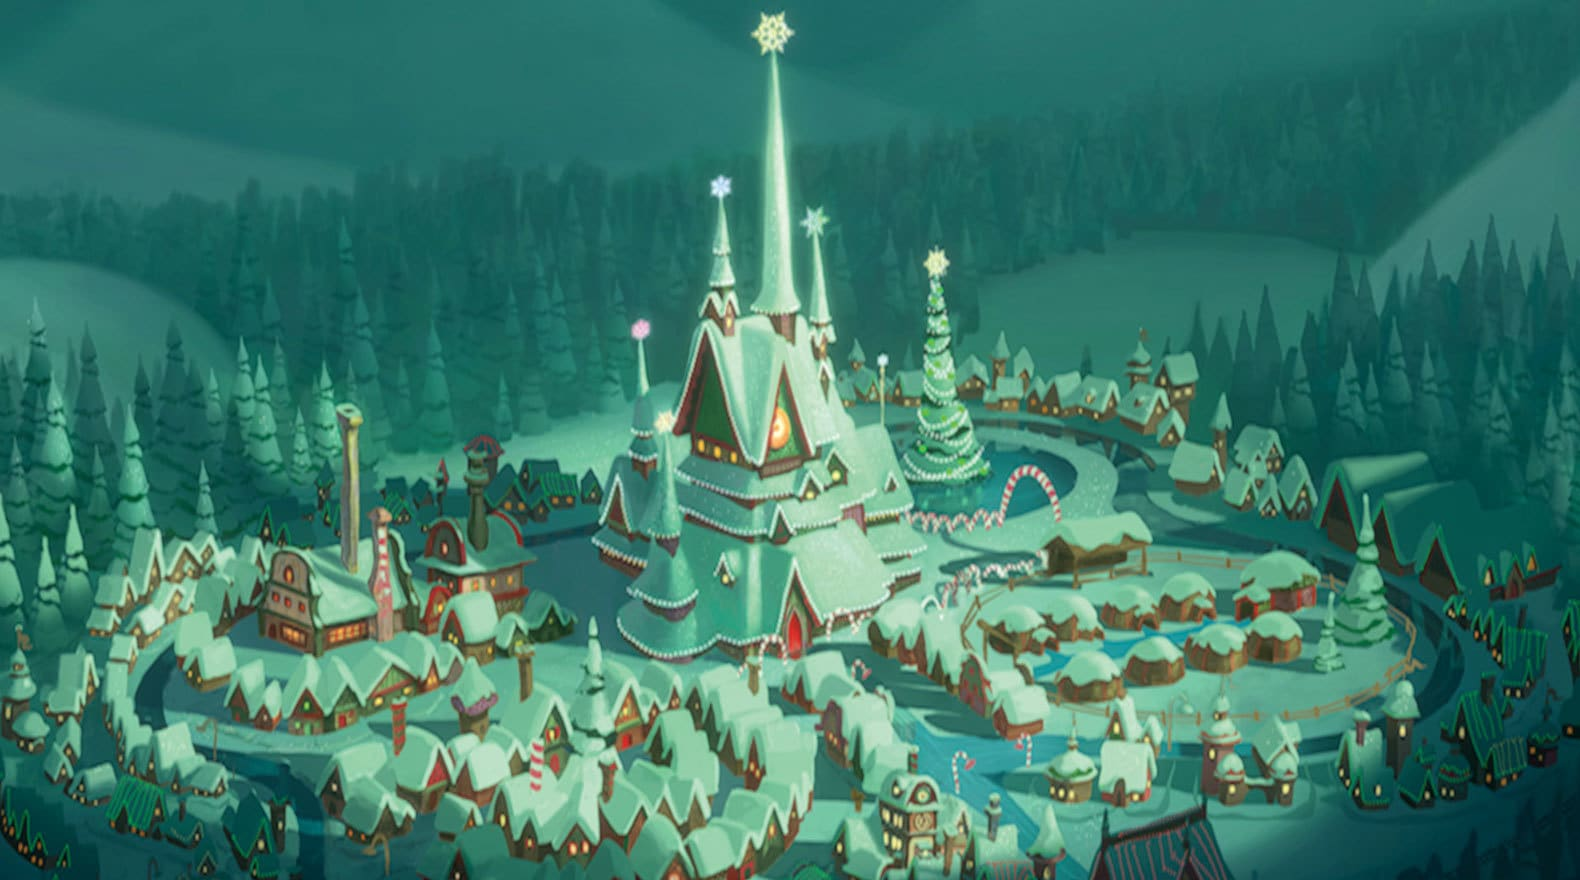 The legendary north pole is home to Mr. And Mrs. Claus, as well as all of Santa's elves and reind...